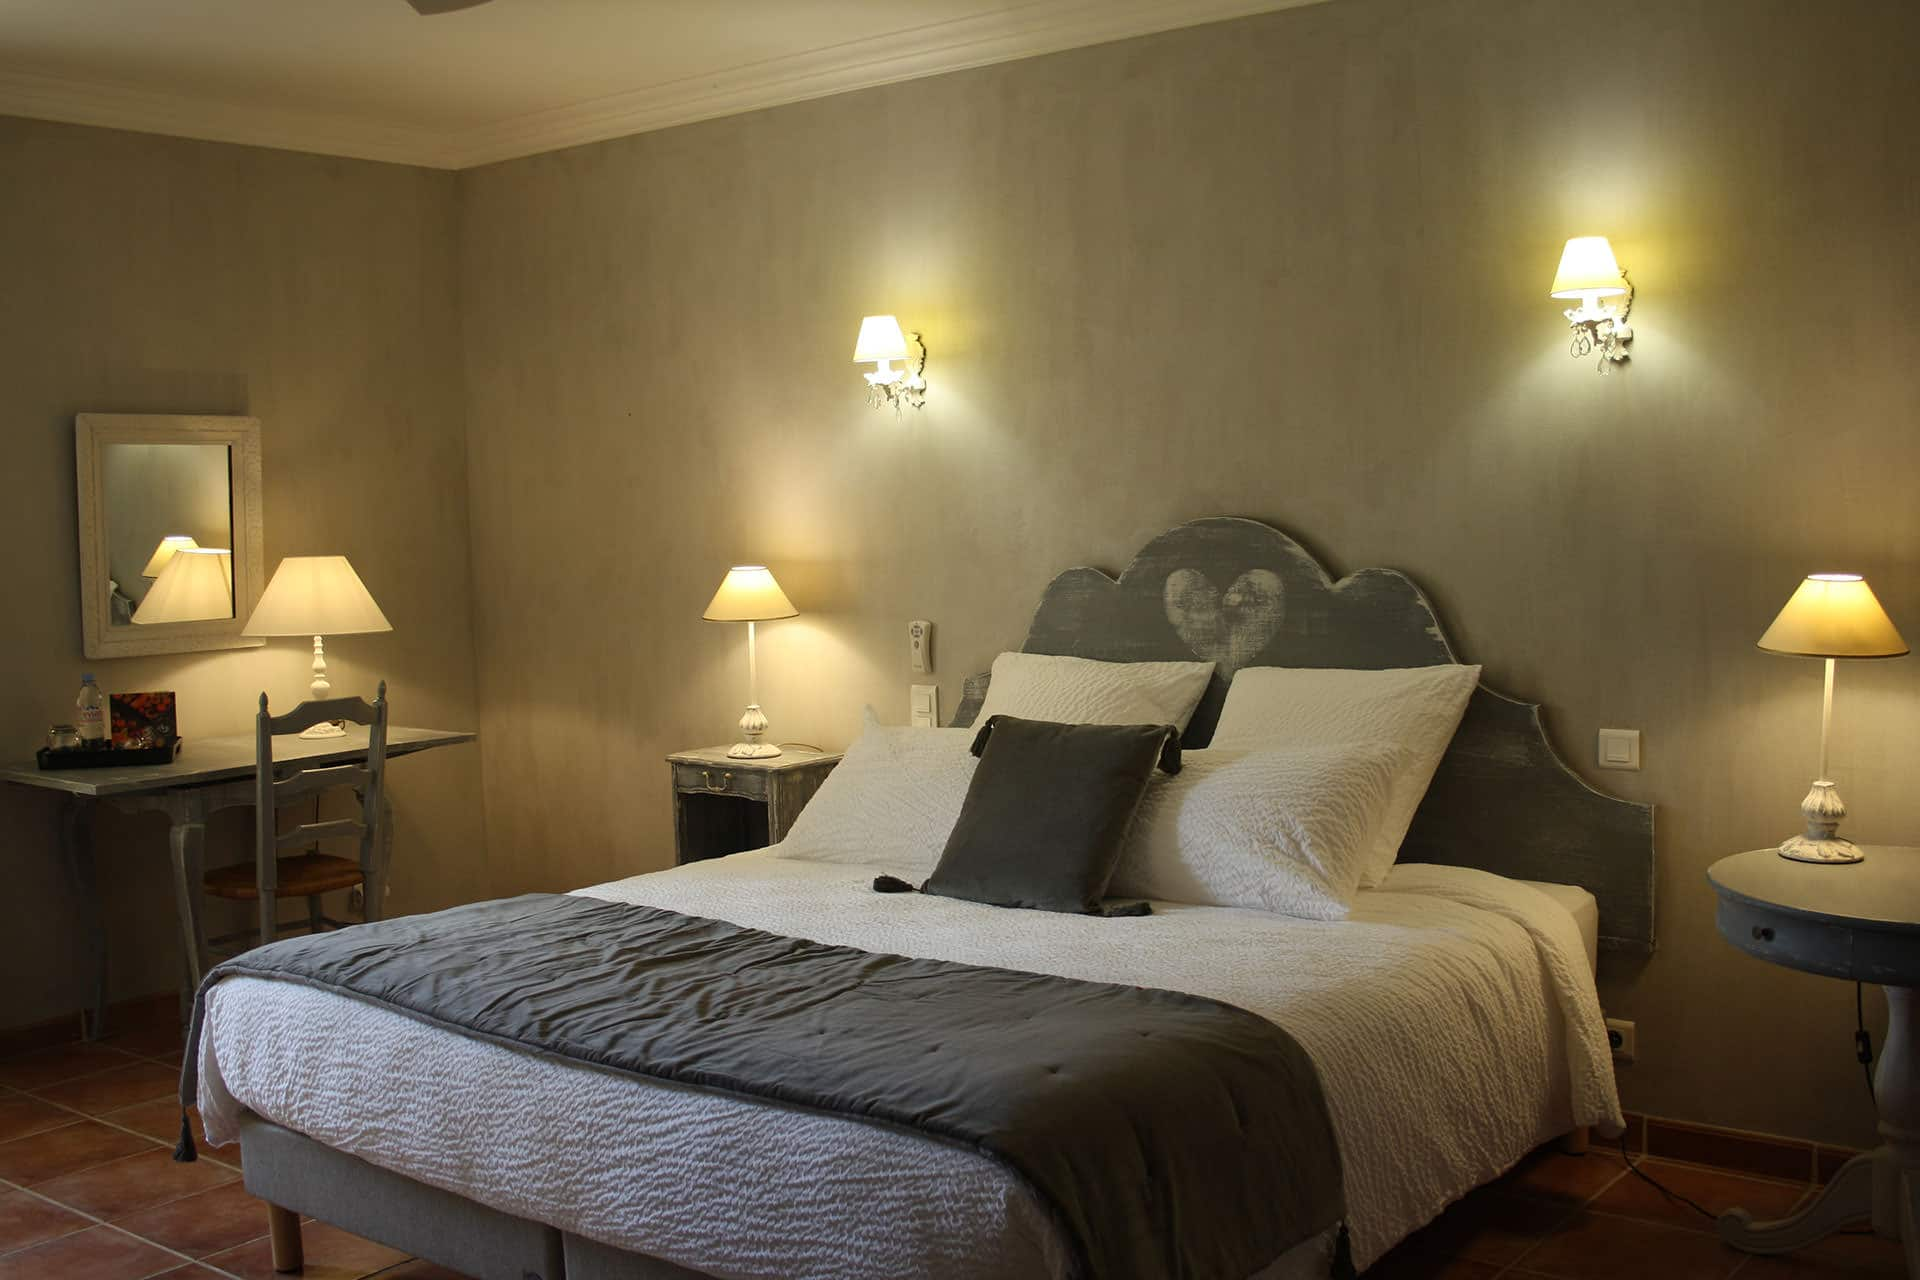 La Chambre D Hotes Gordes Bed And Breakfast In Gordes In The Luberon